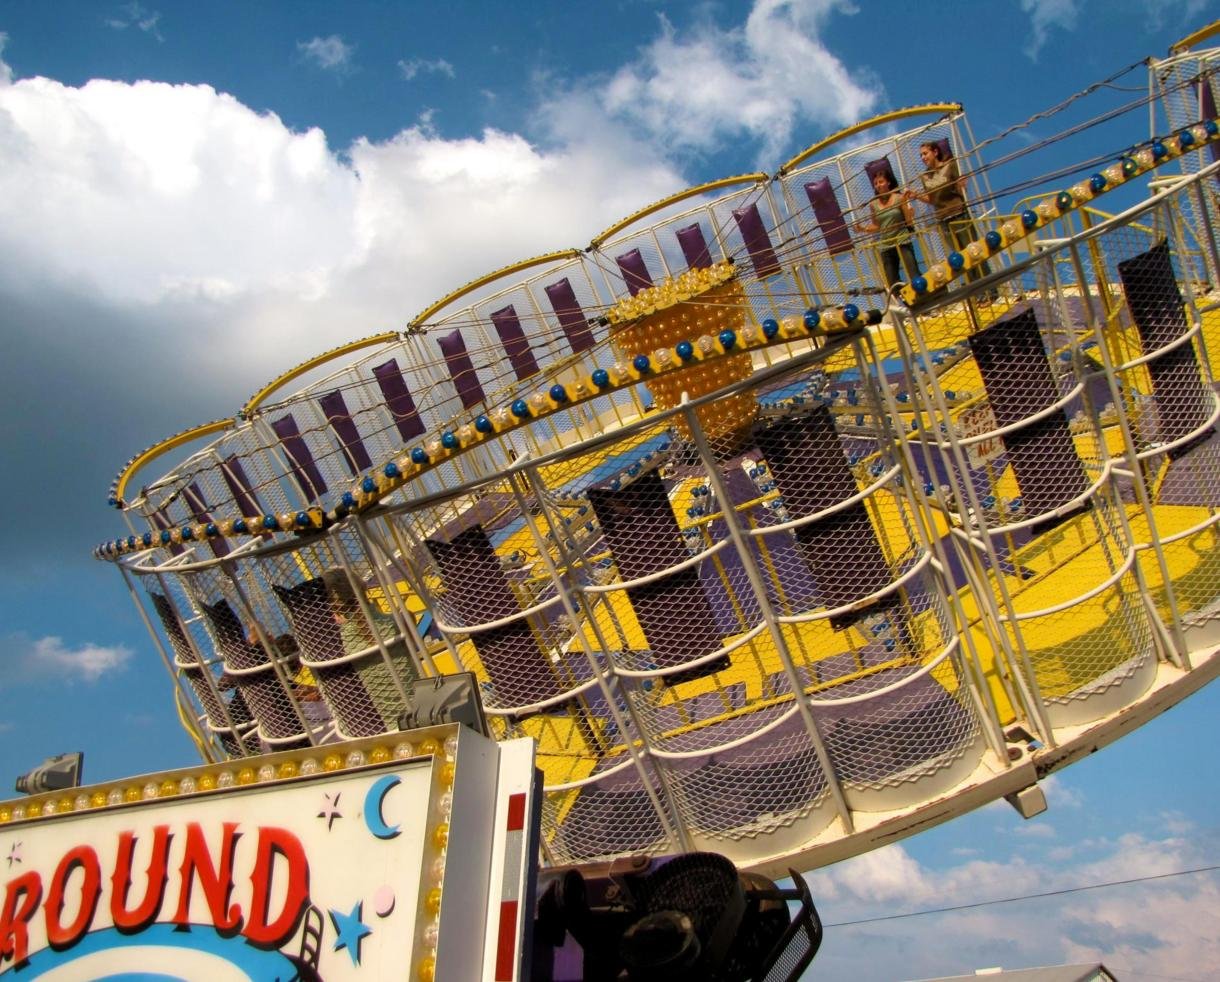 $9 for Ticket to Loudoun County Fair - Kids 5 and Under FREE! (25% Off - $12 Value)